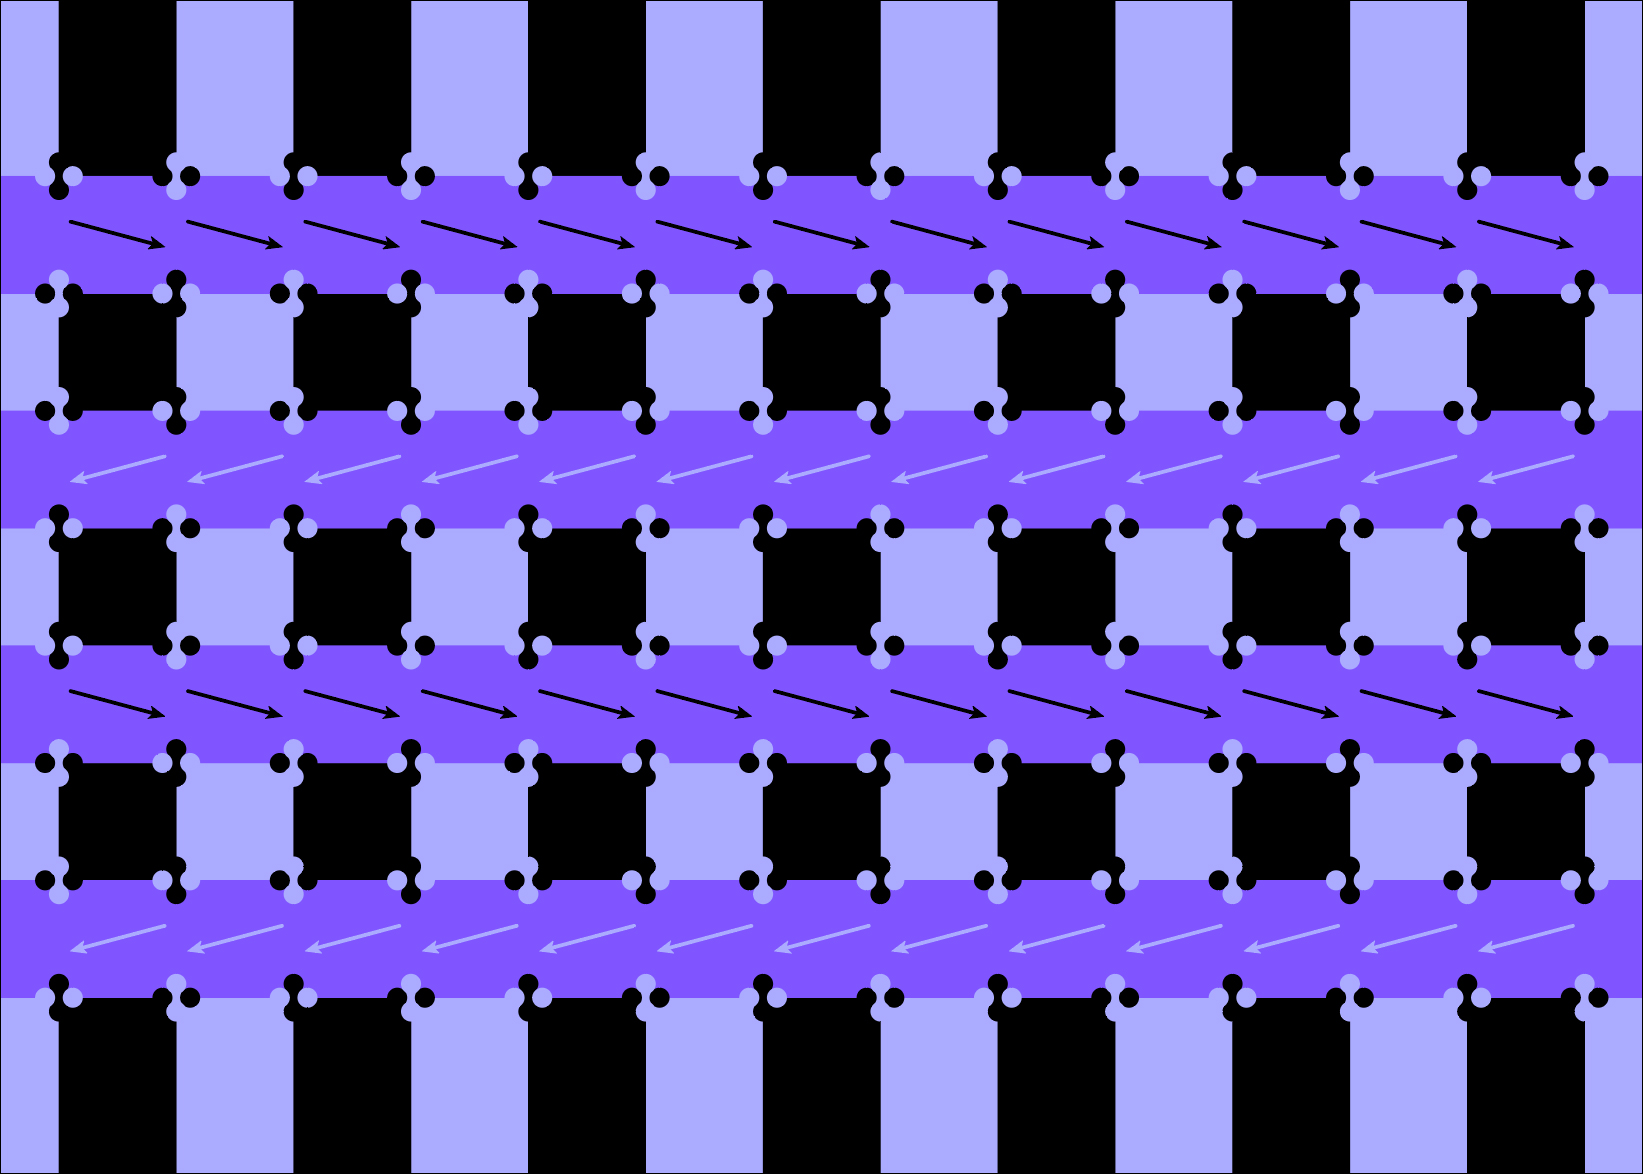 A checkerboard pattern at each intersection makes the purple bars slant in one direction